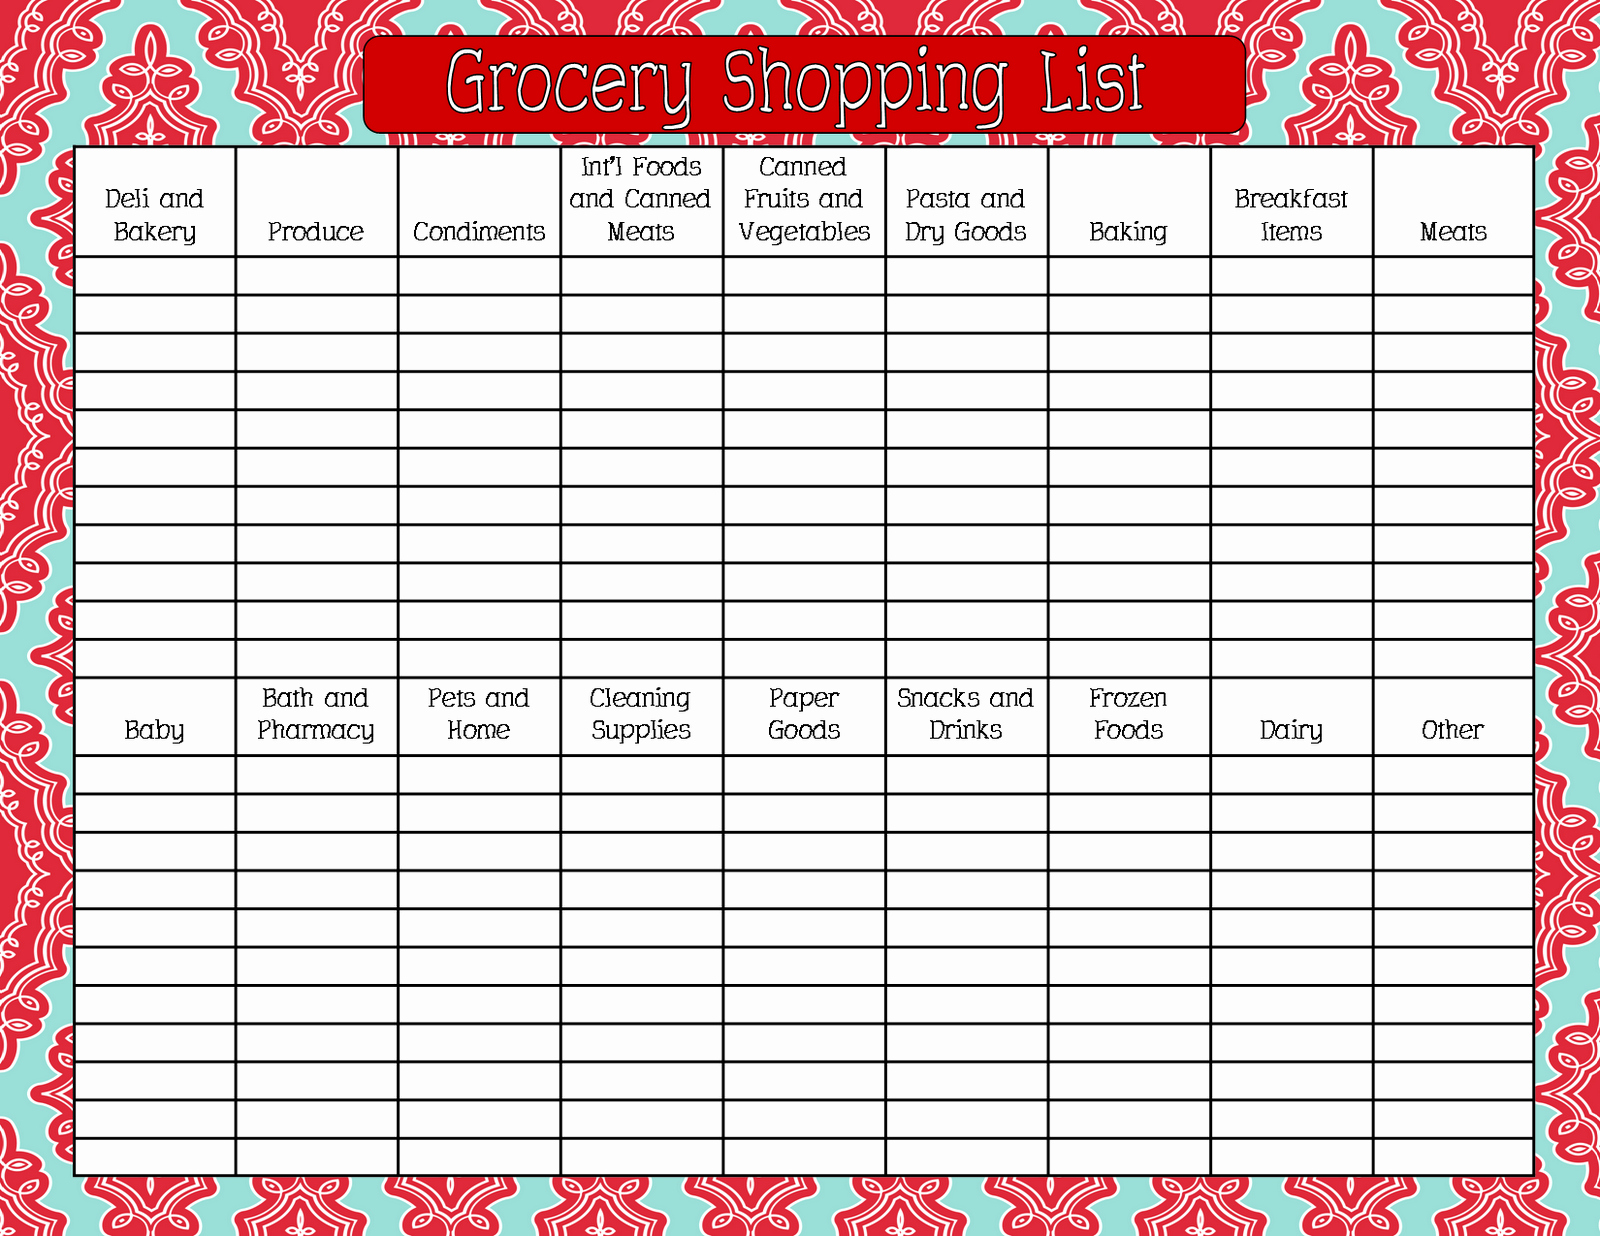 Grocery List by Aisle Template Elegant Grocery Shopping List Printable Nisartmacka